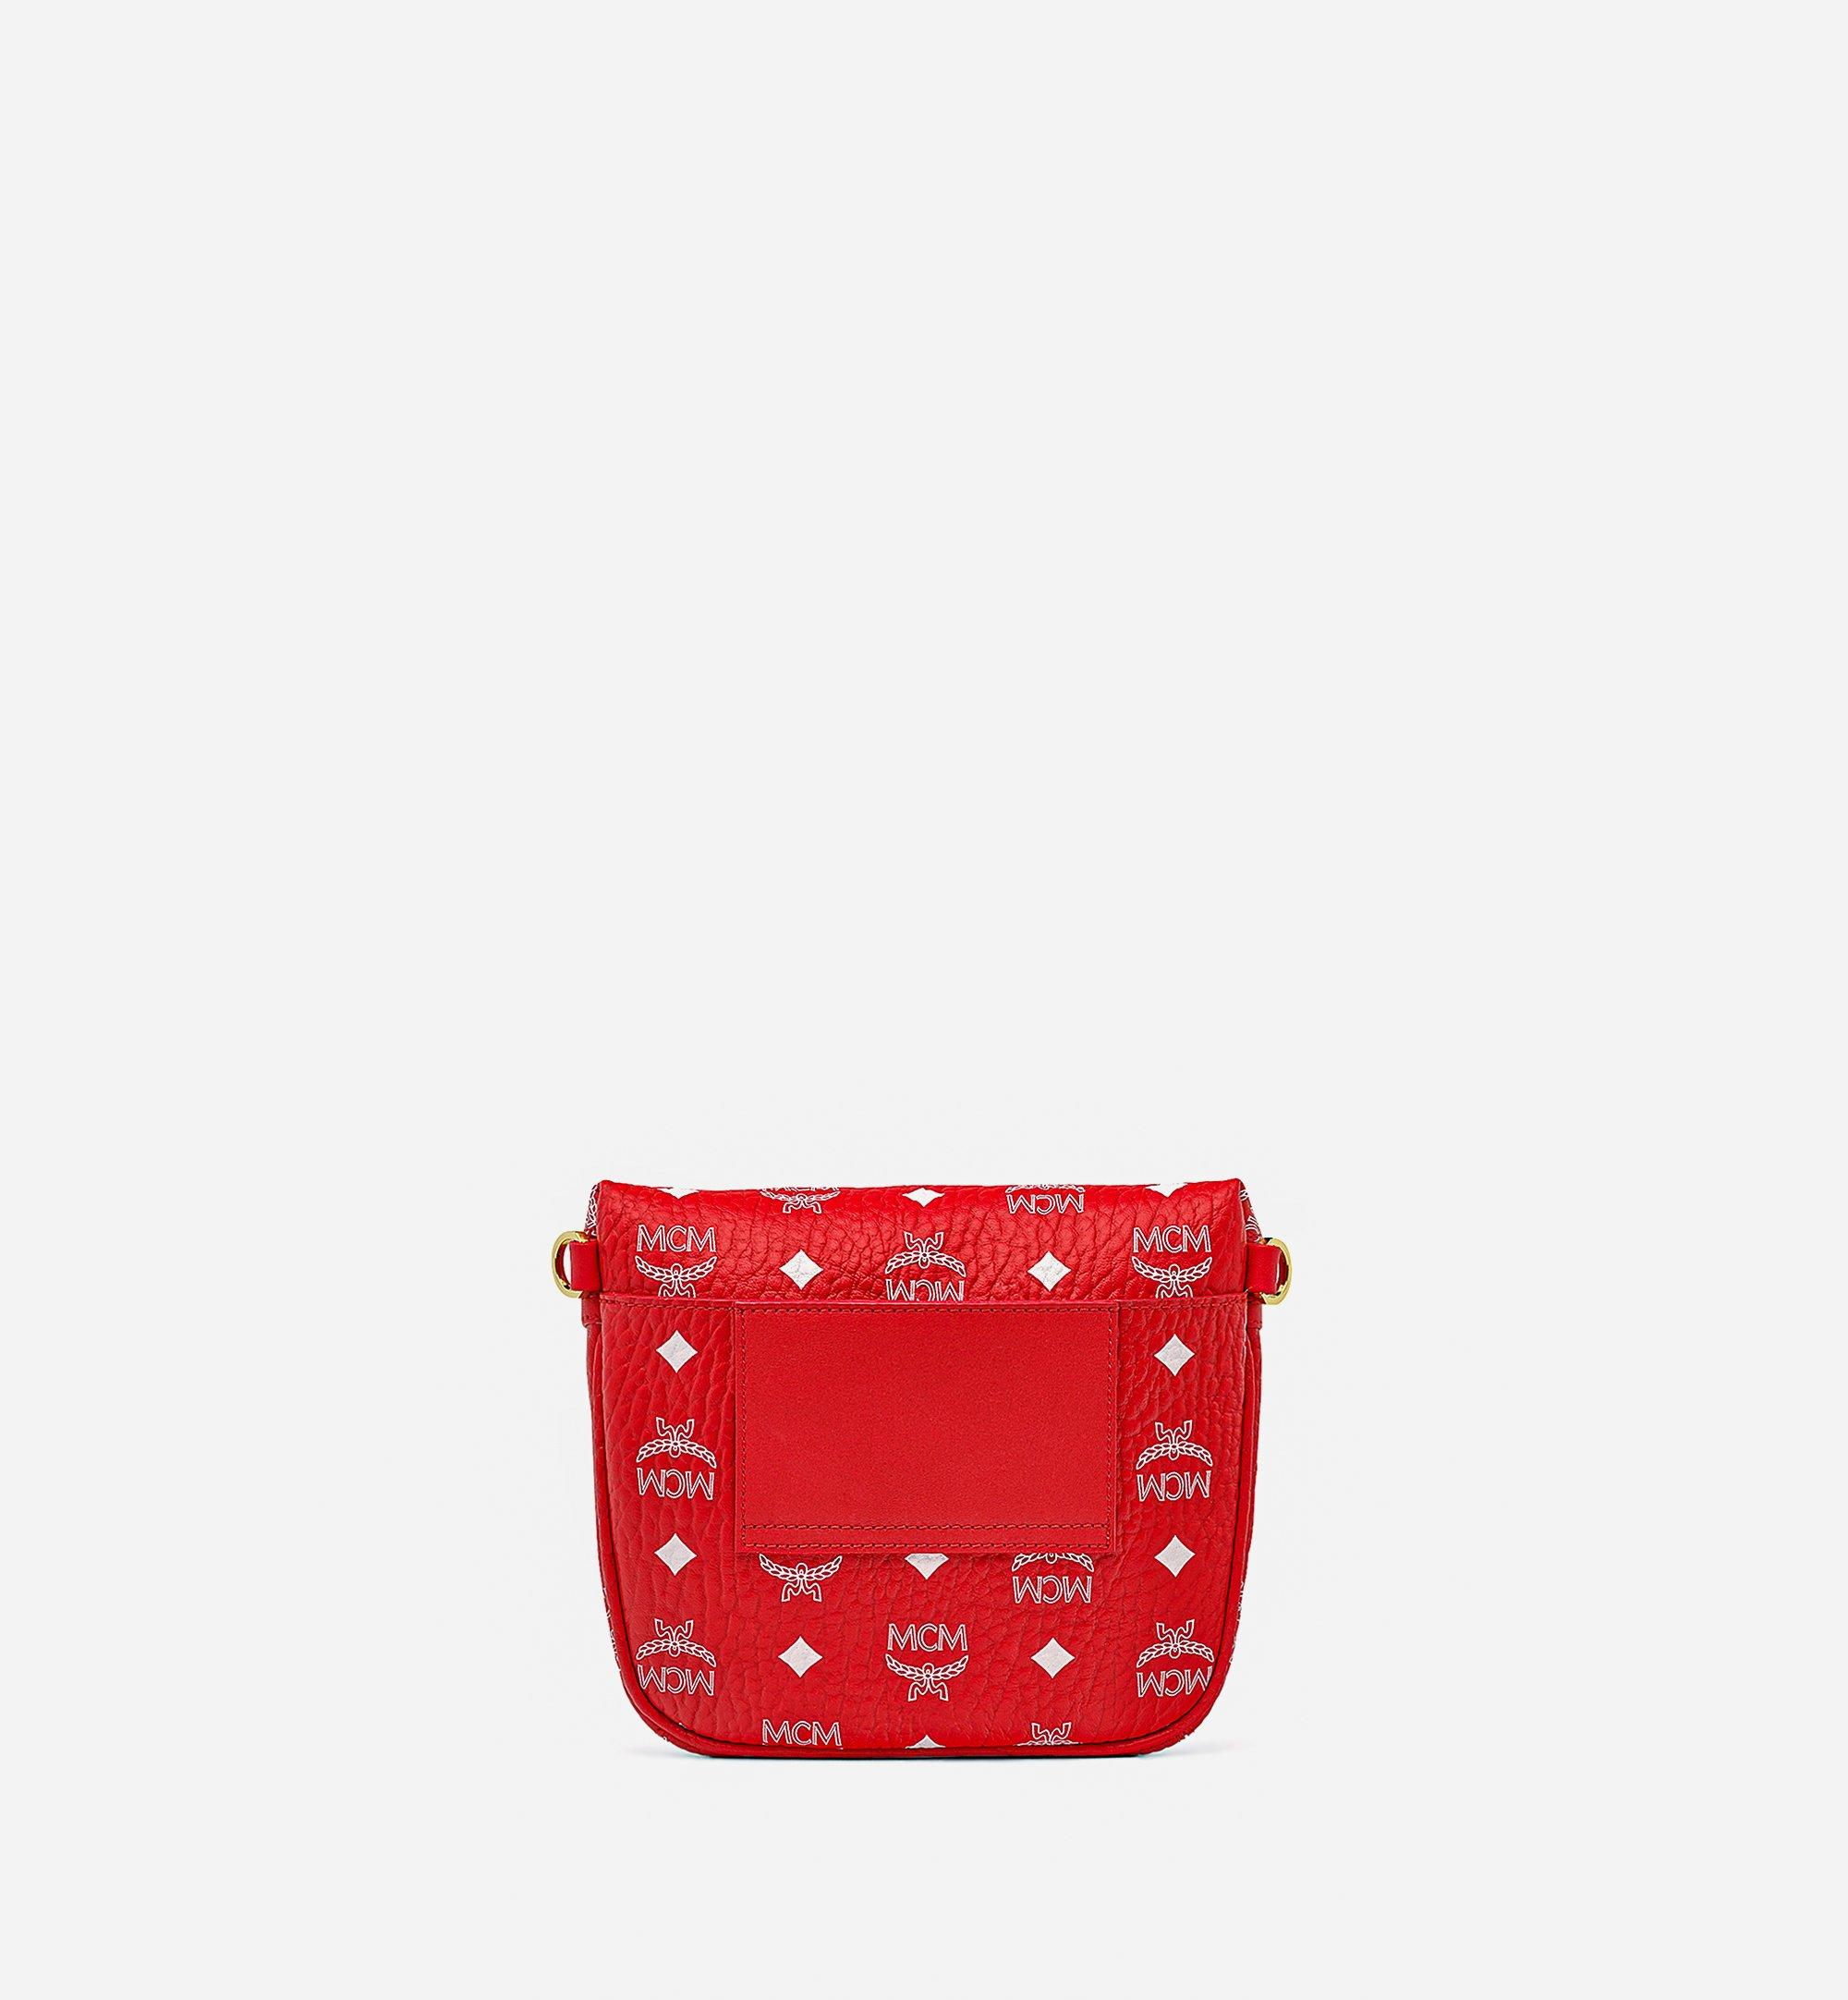 MCM Klassik Crossbody in New Year Visetos Red MMRBSKC01AV001 Alternate View 3